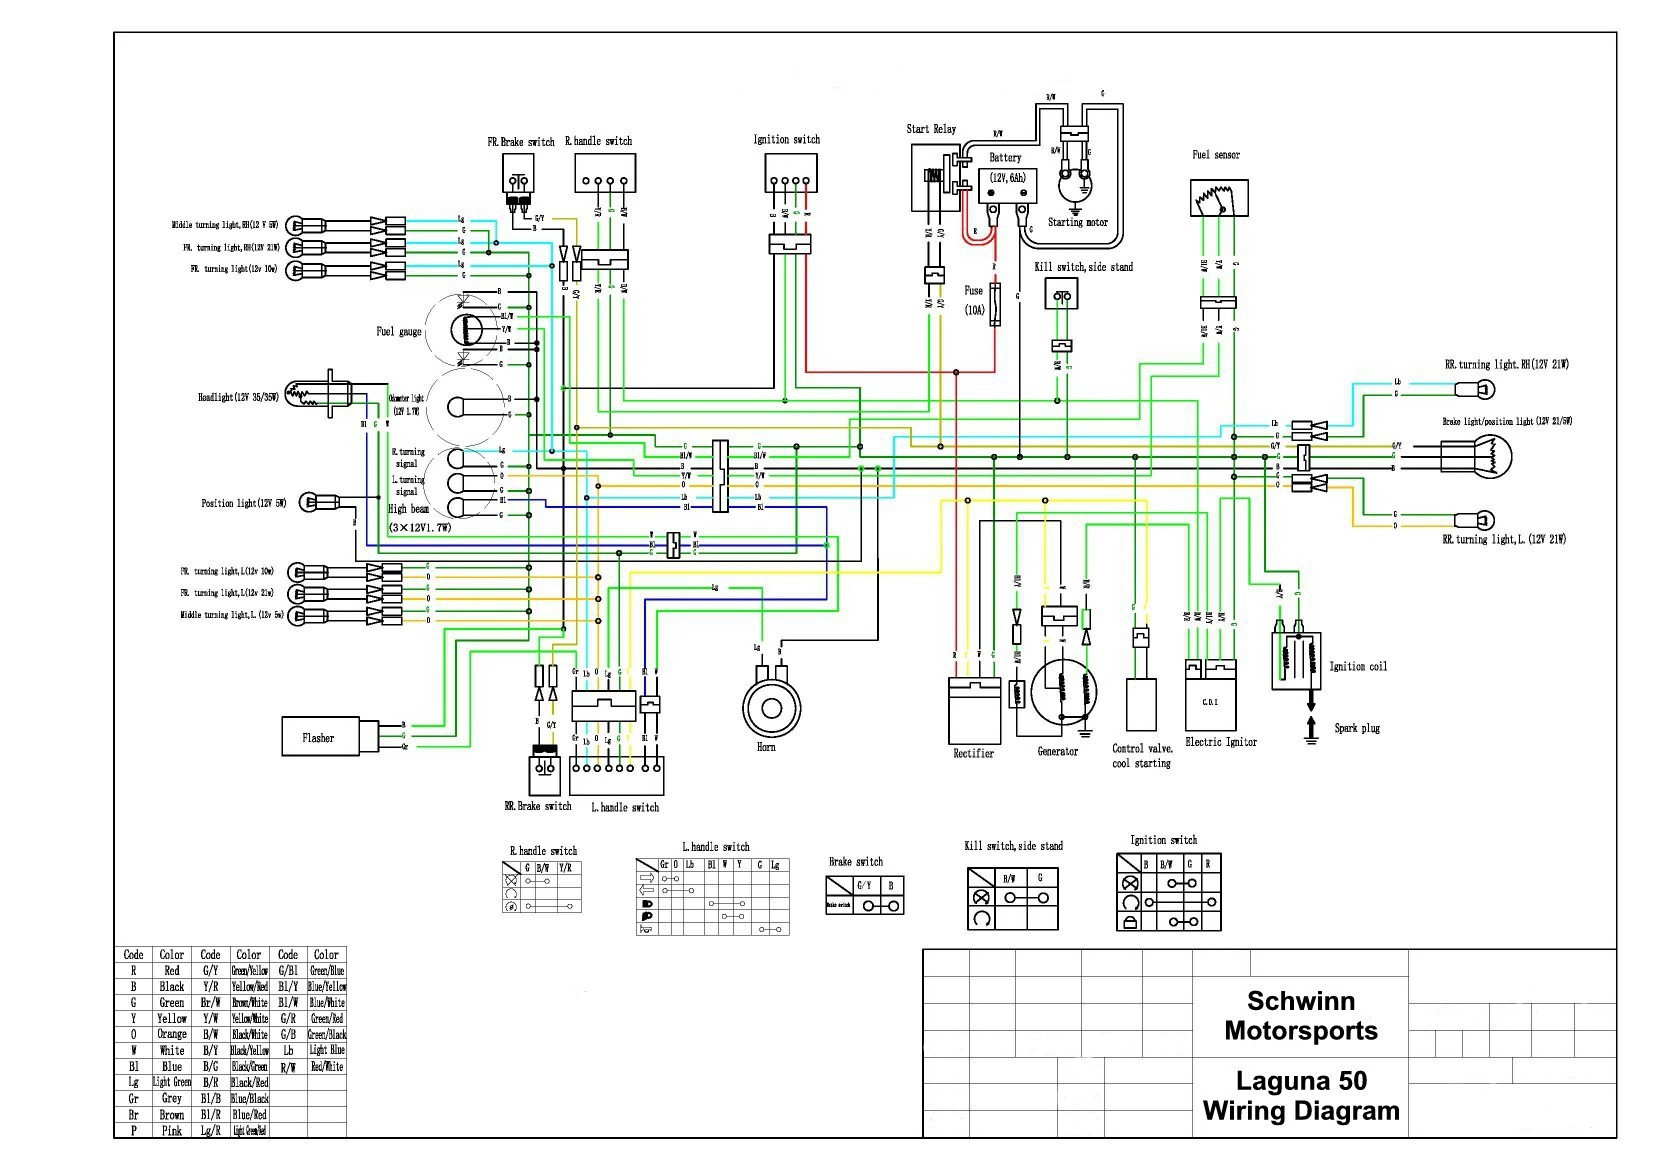 Howhit 150cc Engine Diagram Wiring Diagram for 3 Way Switches Multiple Lights Scooter with Basic Of Howhit 150cc Engine Diagram